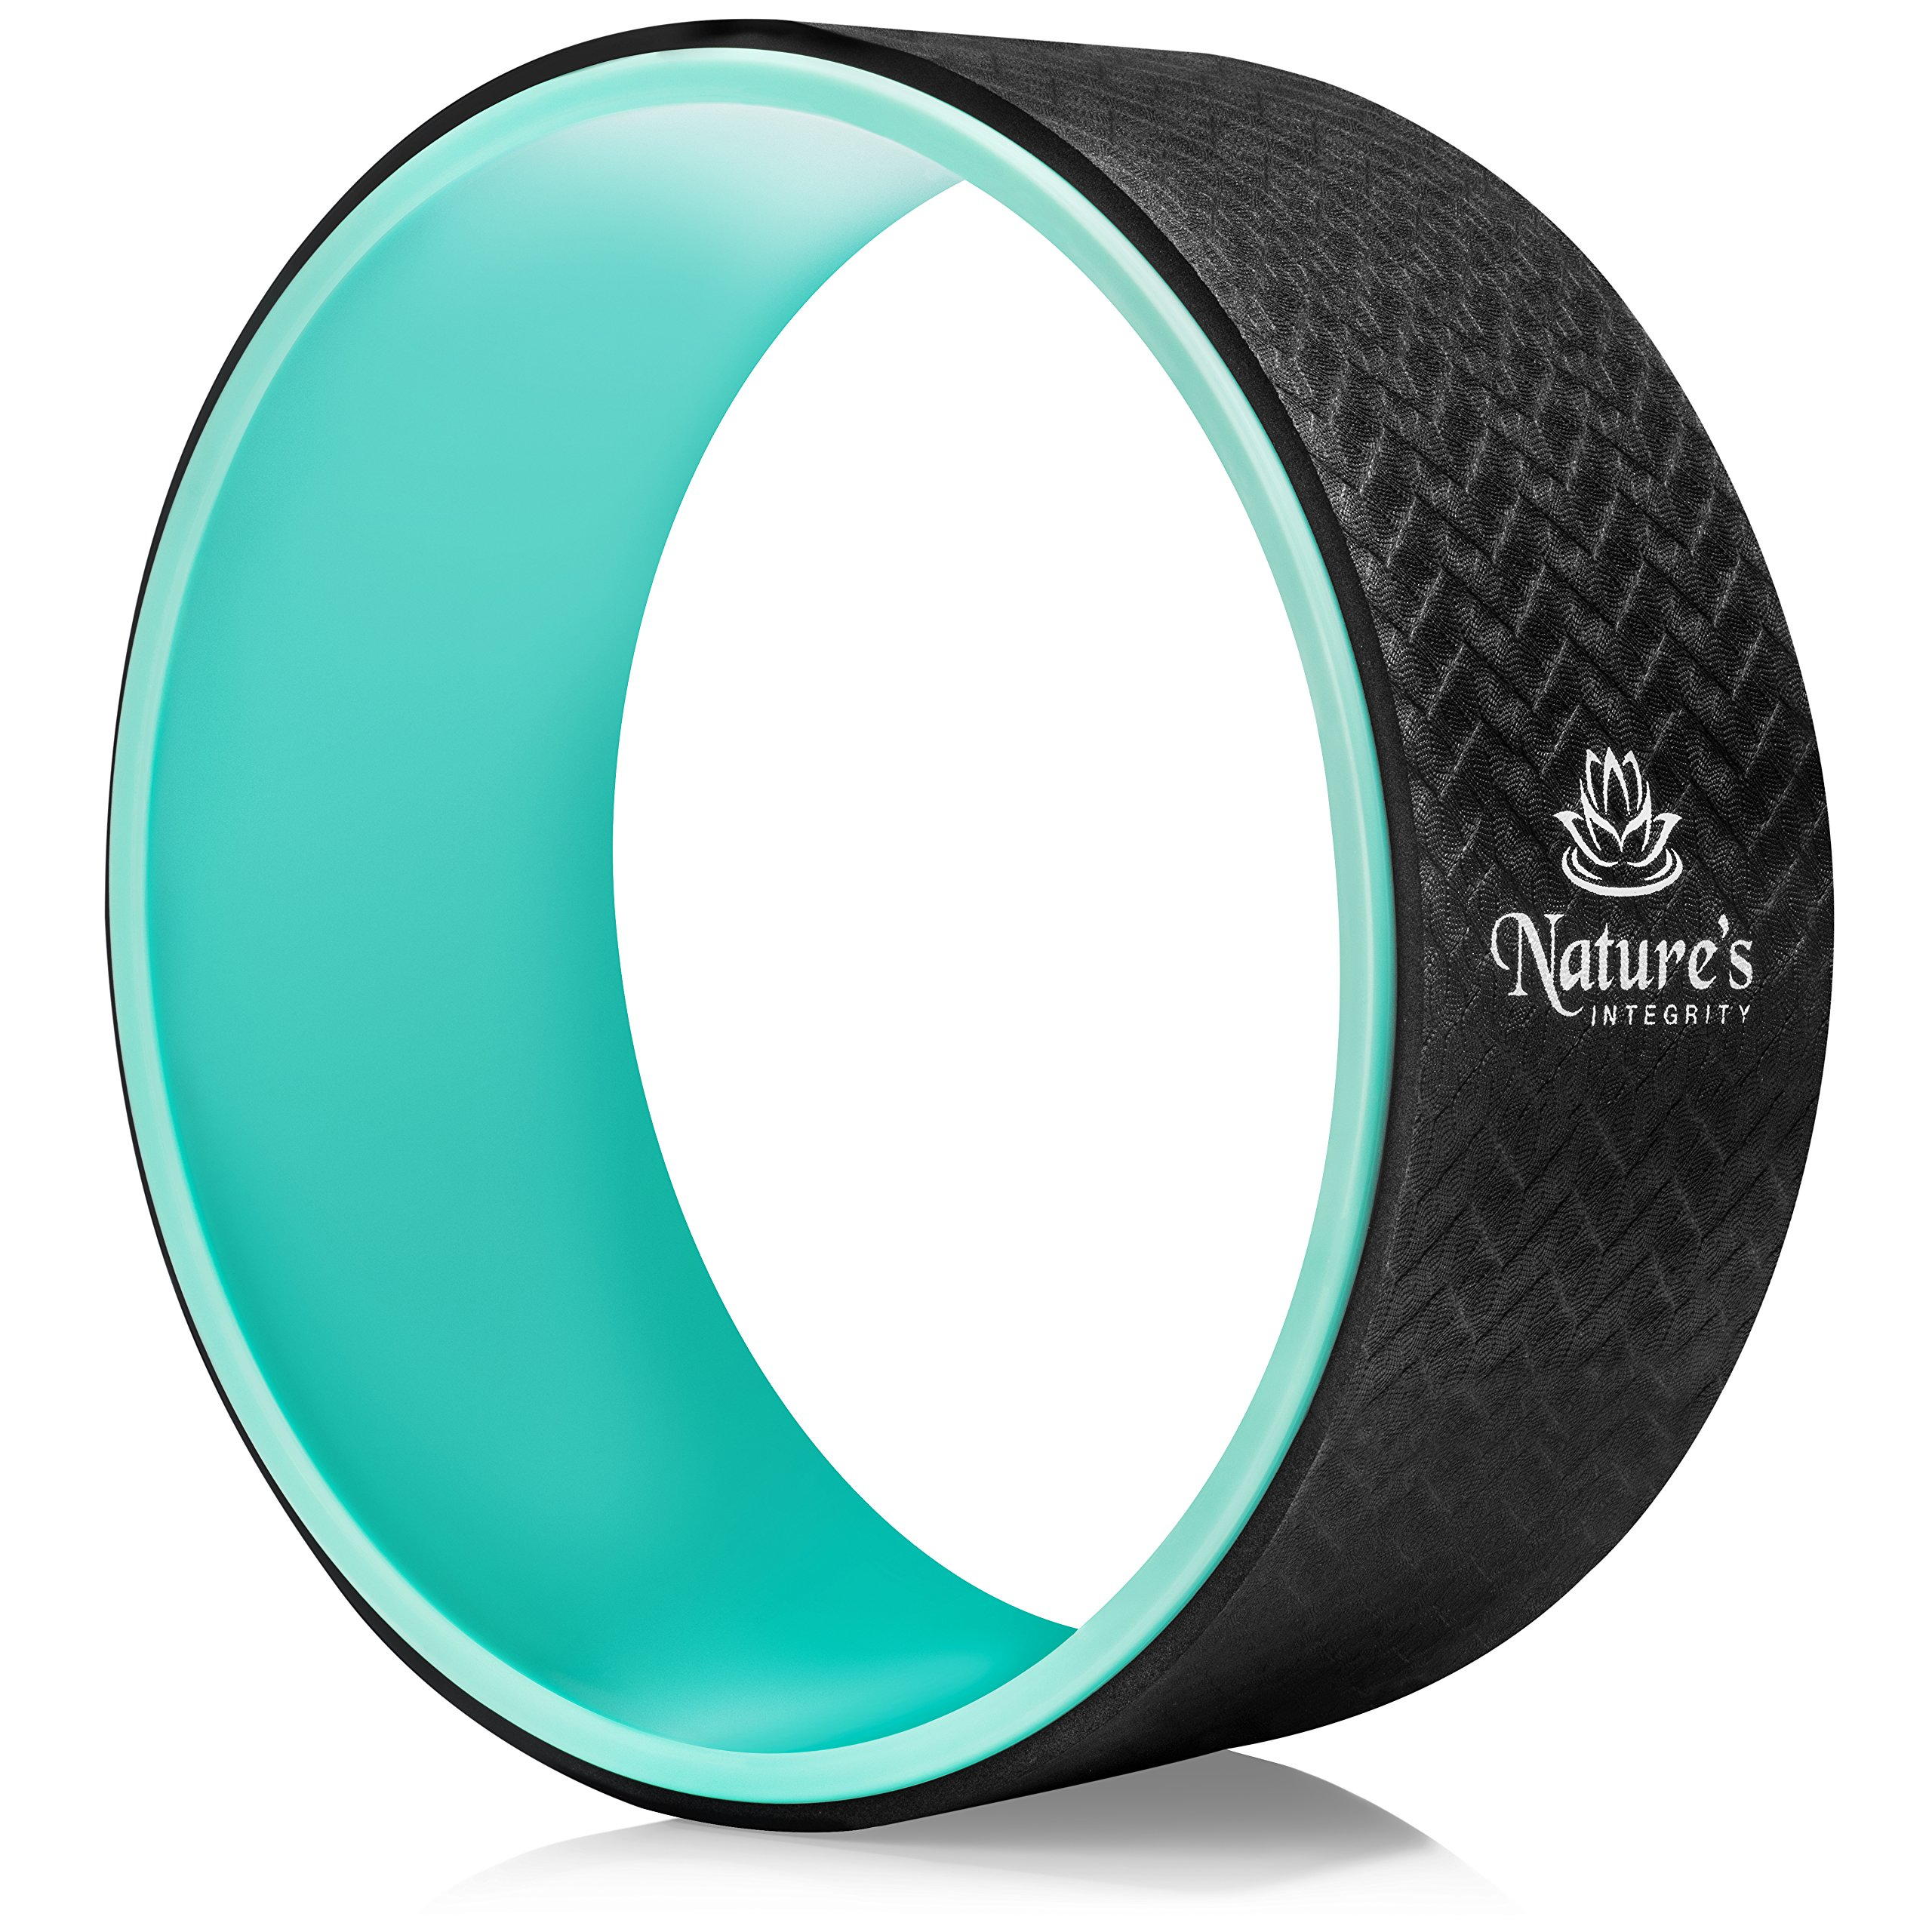 Nature's Integrity Yoga Wheel 13'' - [Strongest] Most Comfortable Dharma Yoga Prop - Perfect Yoga Roller for Stretching, Backbends & Back Pain - Sweat Resistant & Eco-Friendly - Pose Guide Included